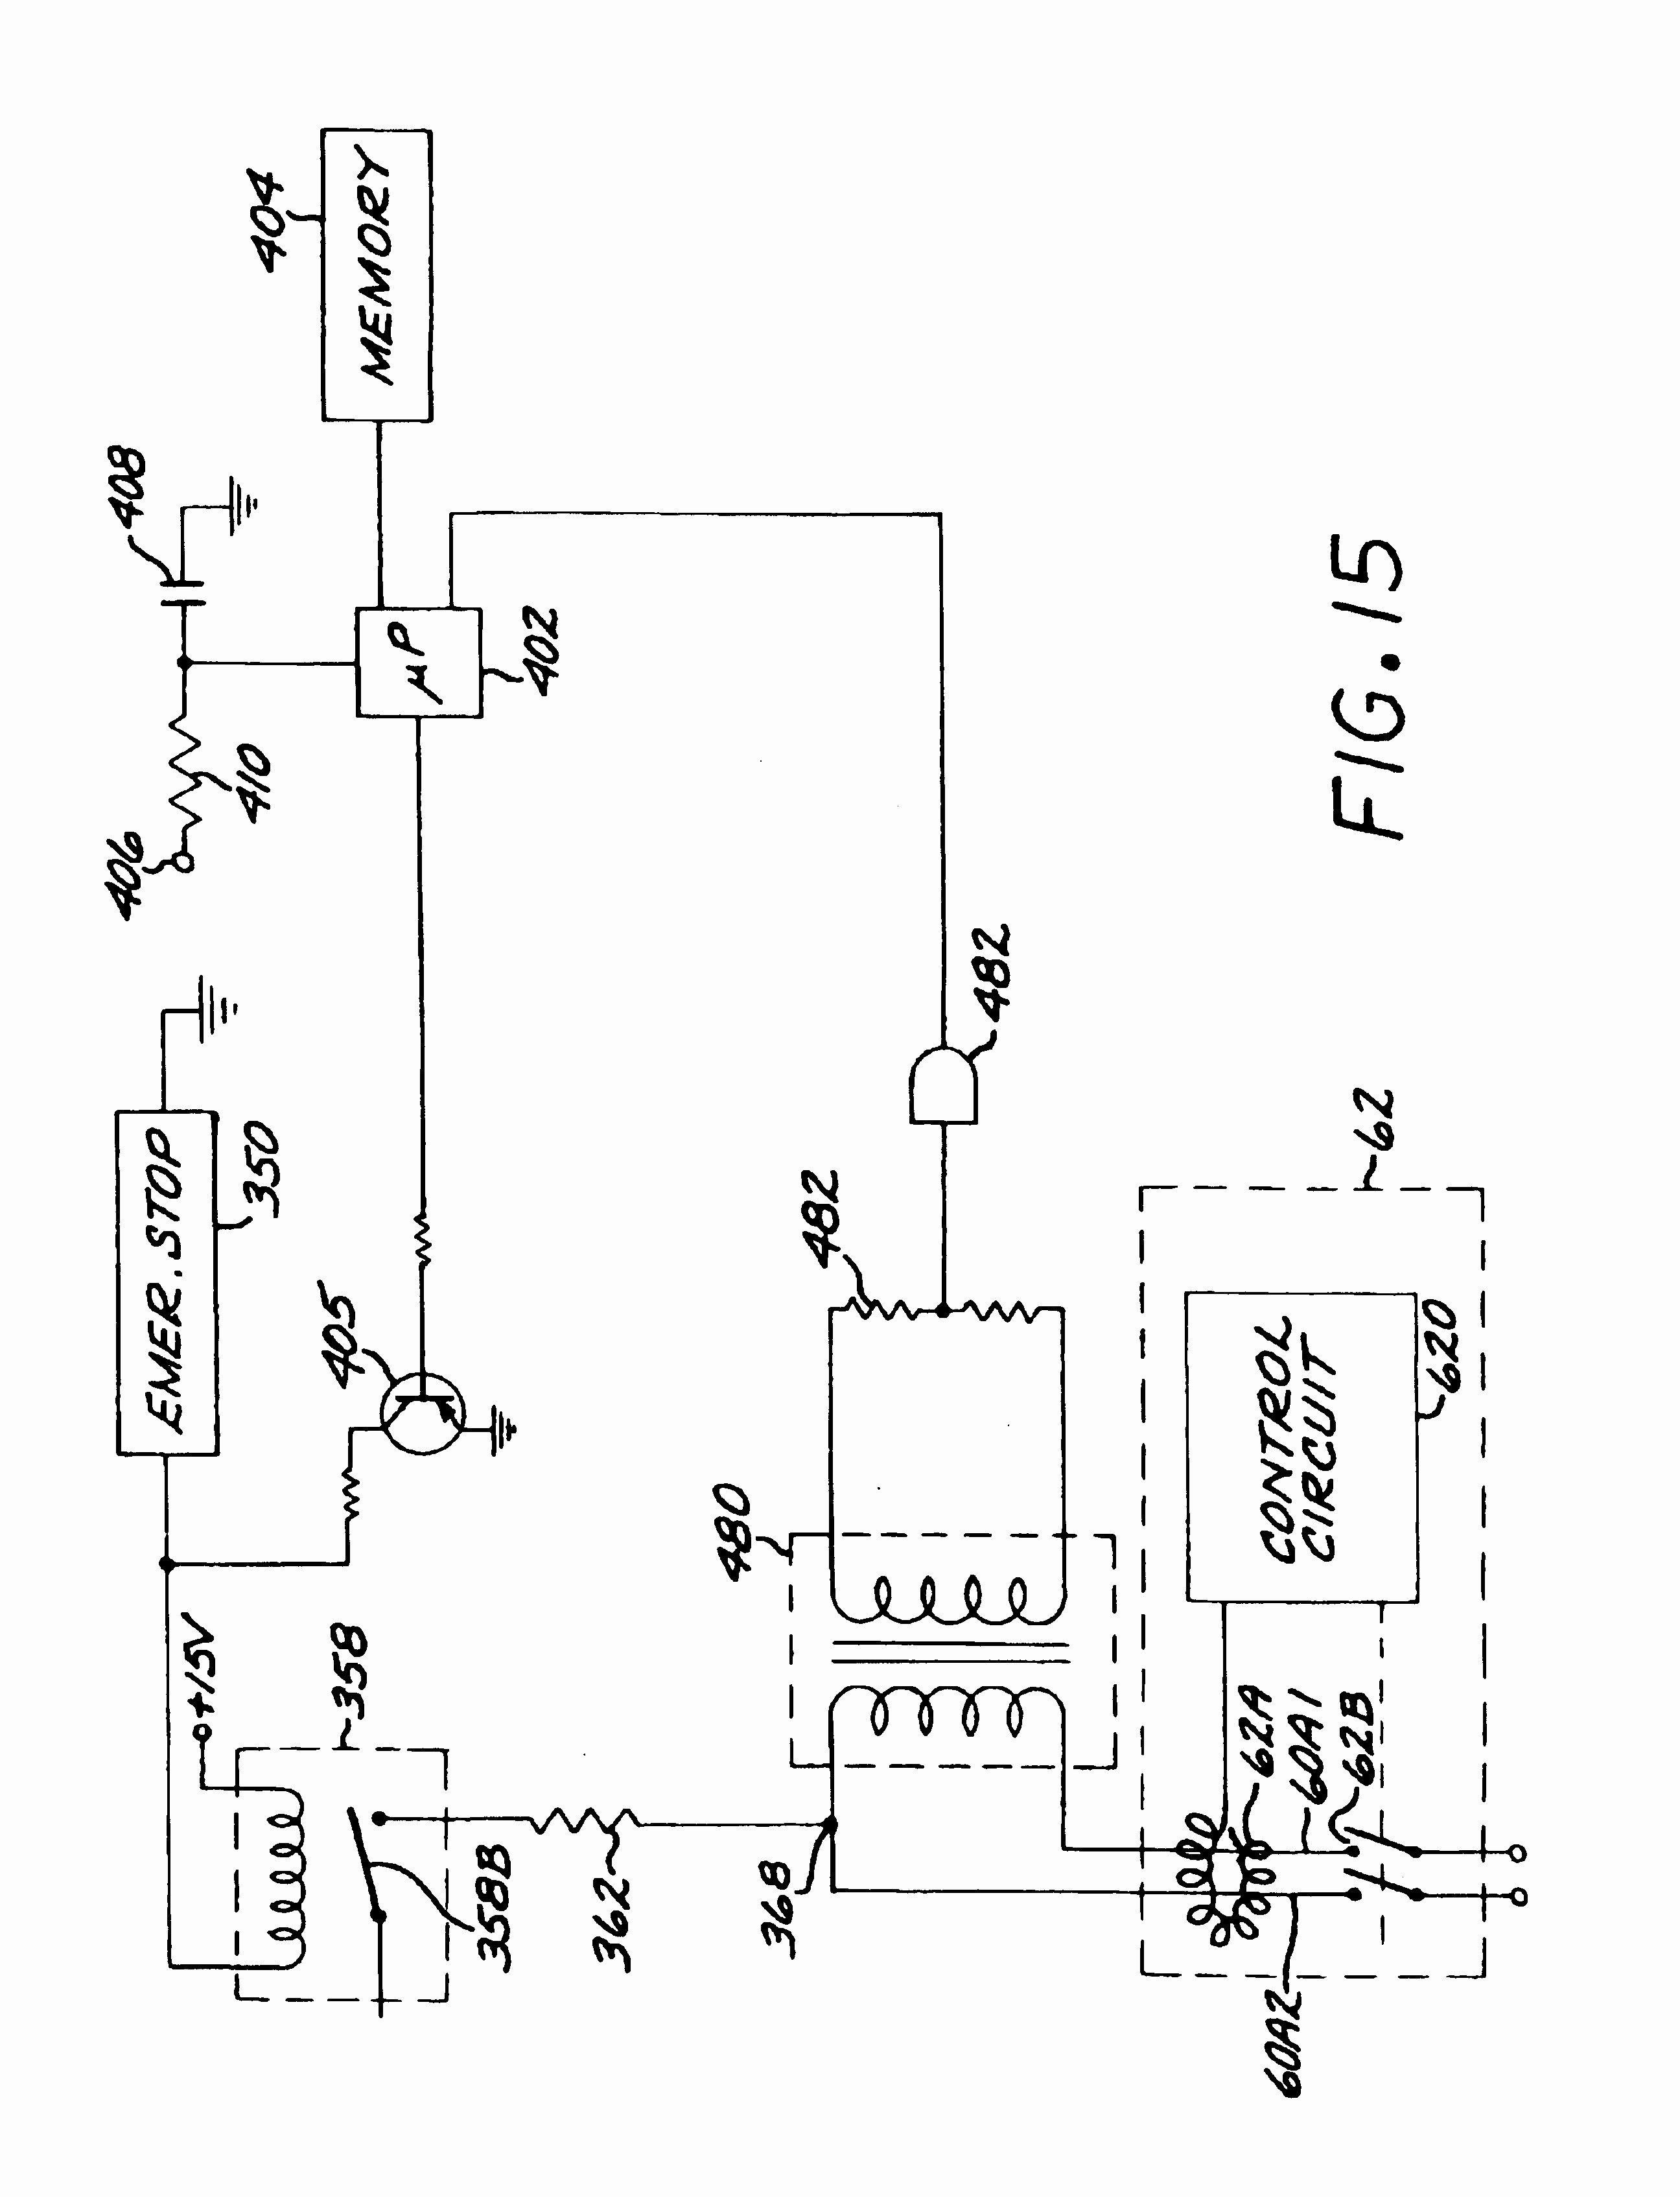 hayward super pump wiring diagram Download-Swimming Pool Timer Wiring Diagram for Spa Pump Wiring Diagram New Sta Rite Pool Pump Wiring 4-r